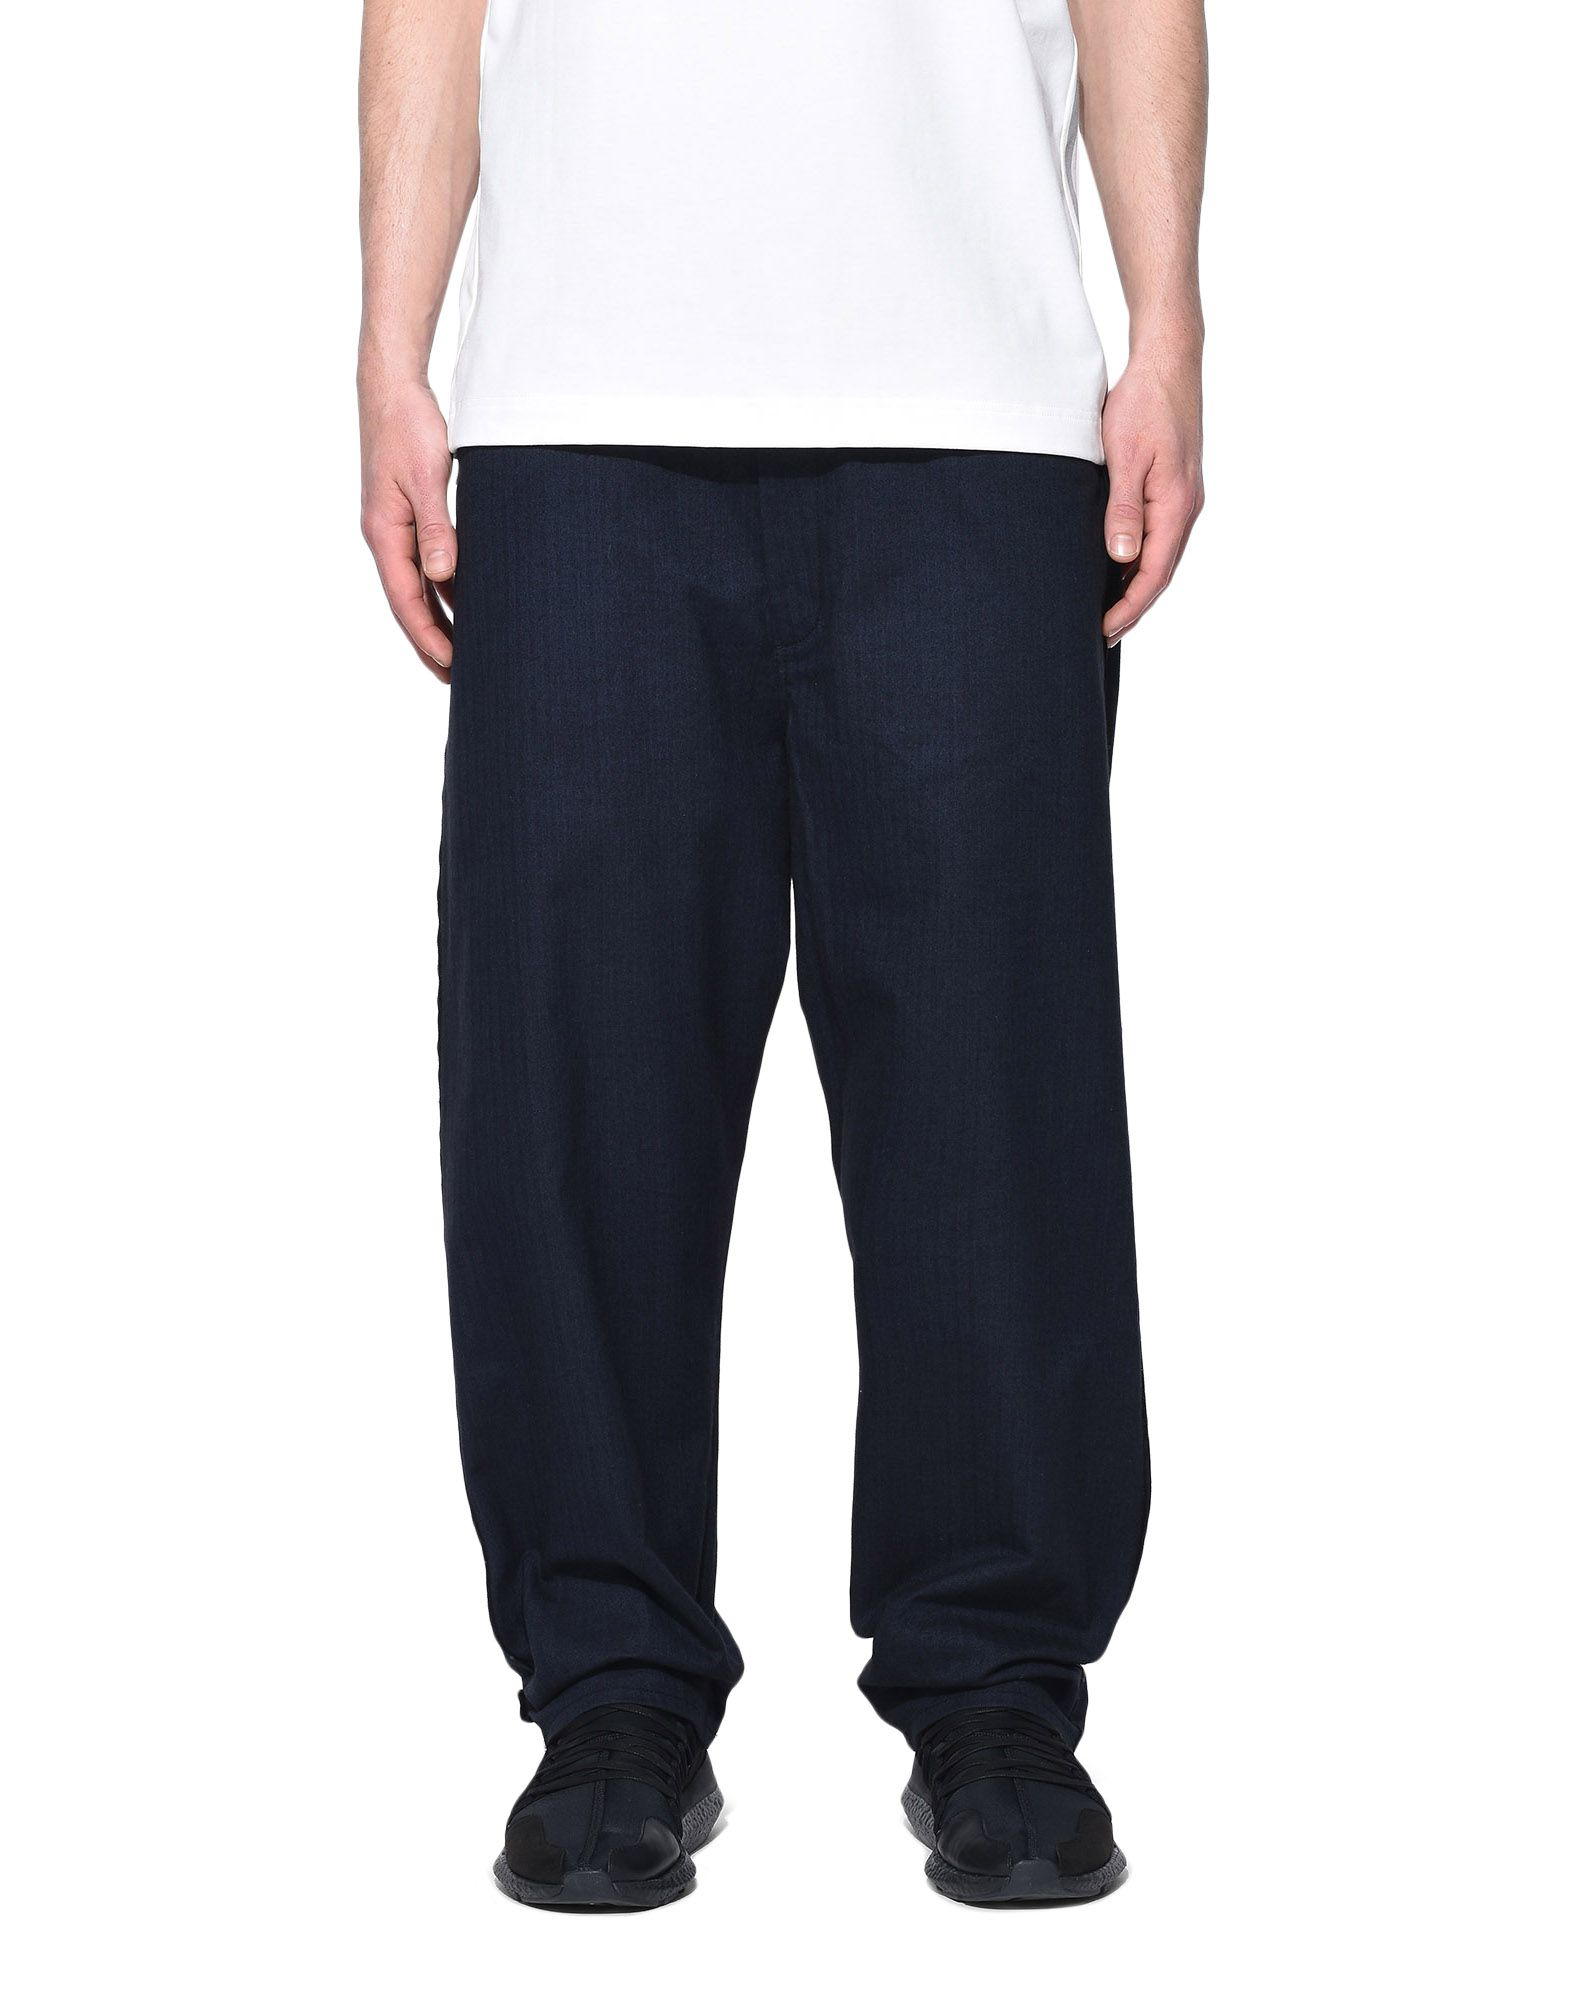 Y-3 Y-3 Herringbone Tailored Pants Klassische Hosen Herren r